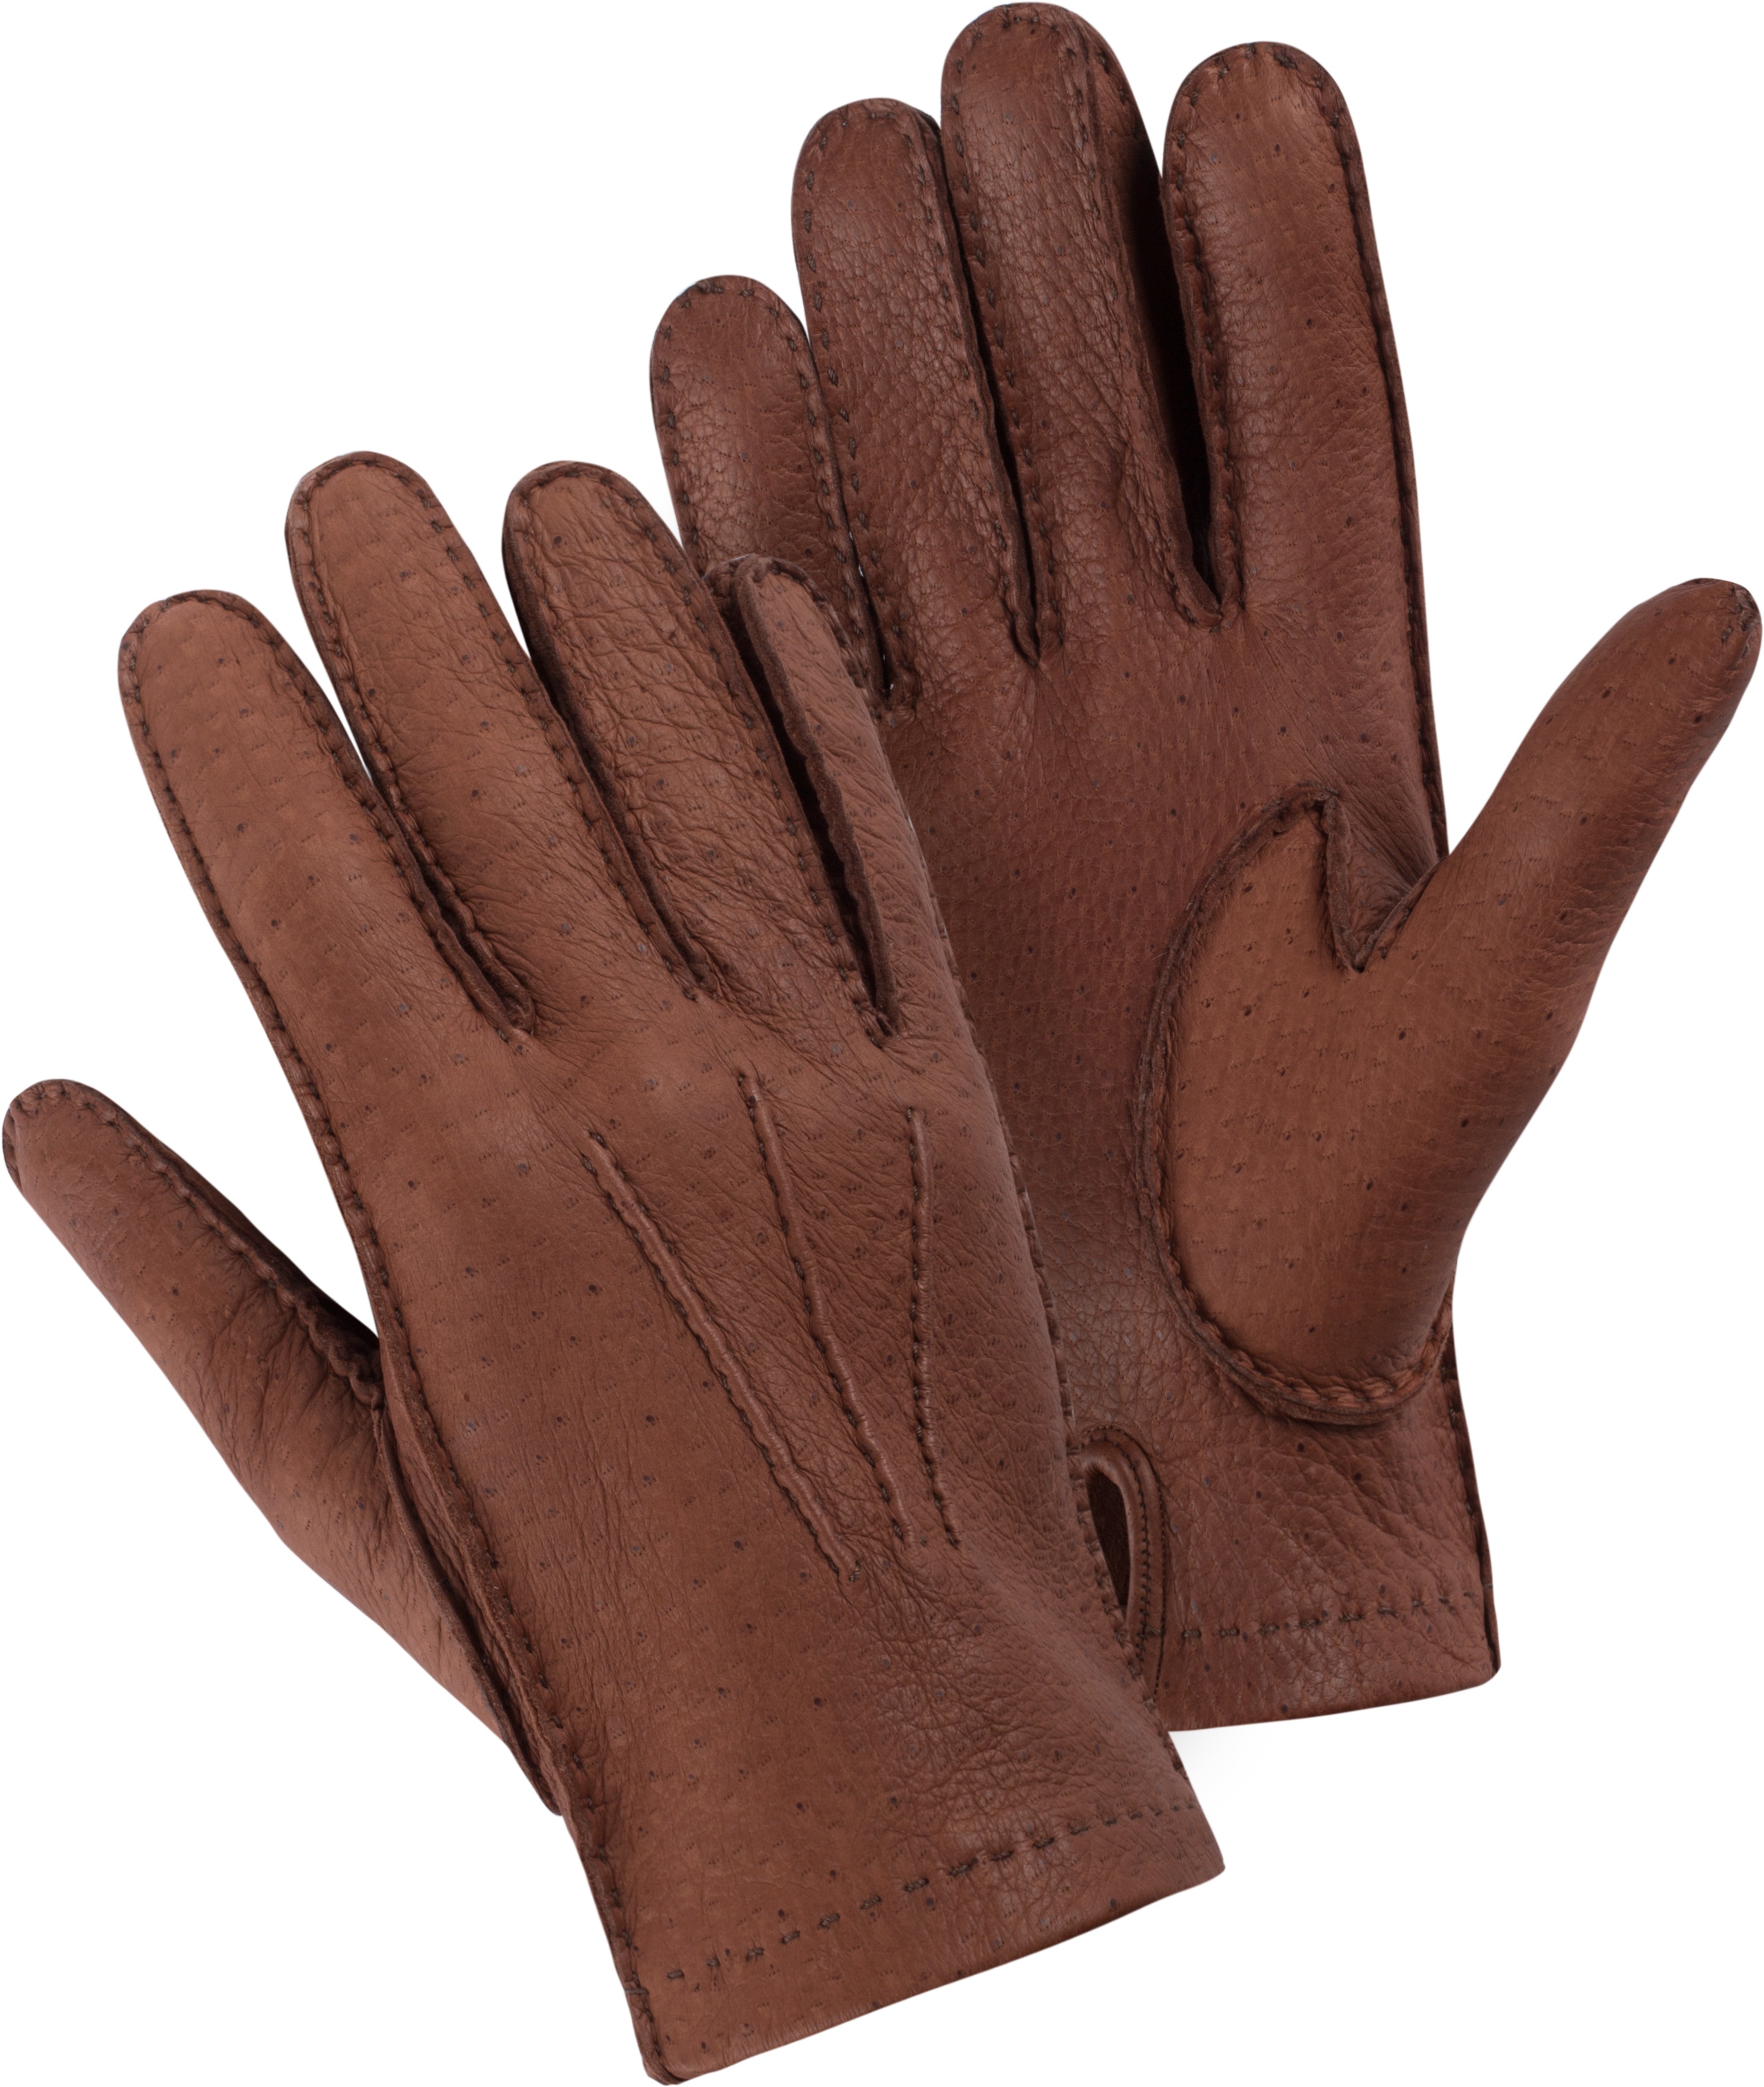 Mens Gloves  Mittens amp Running Sleeves  Columbia Sportswear